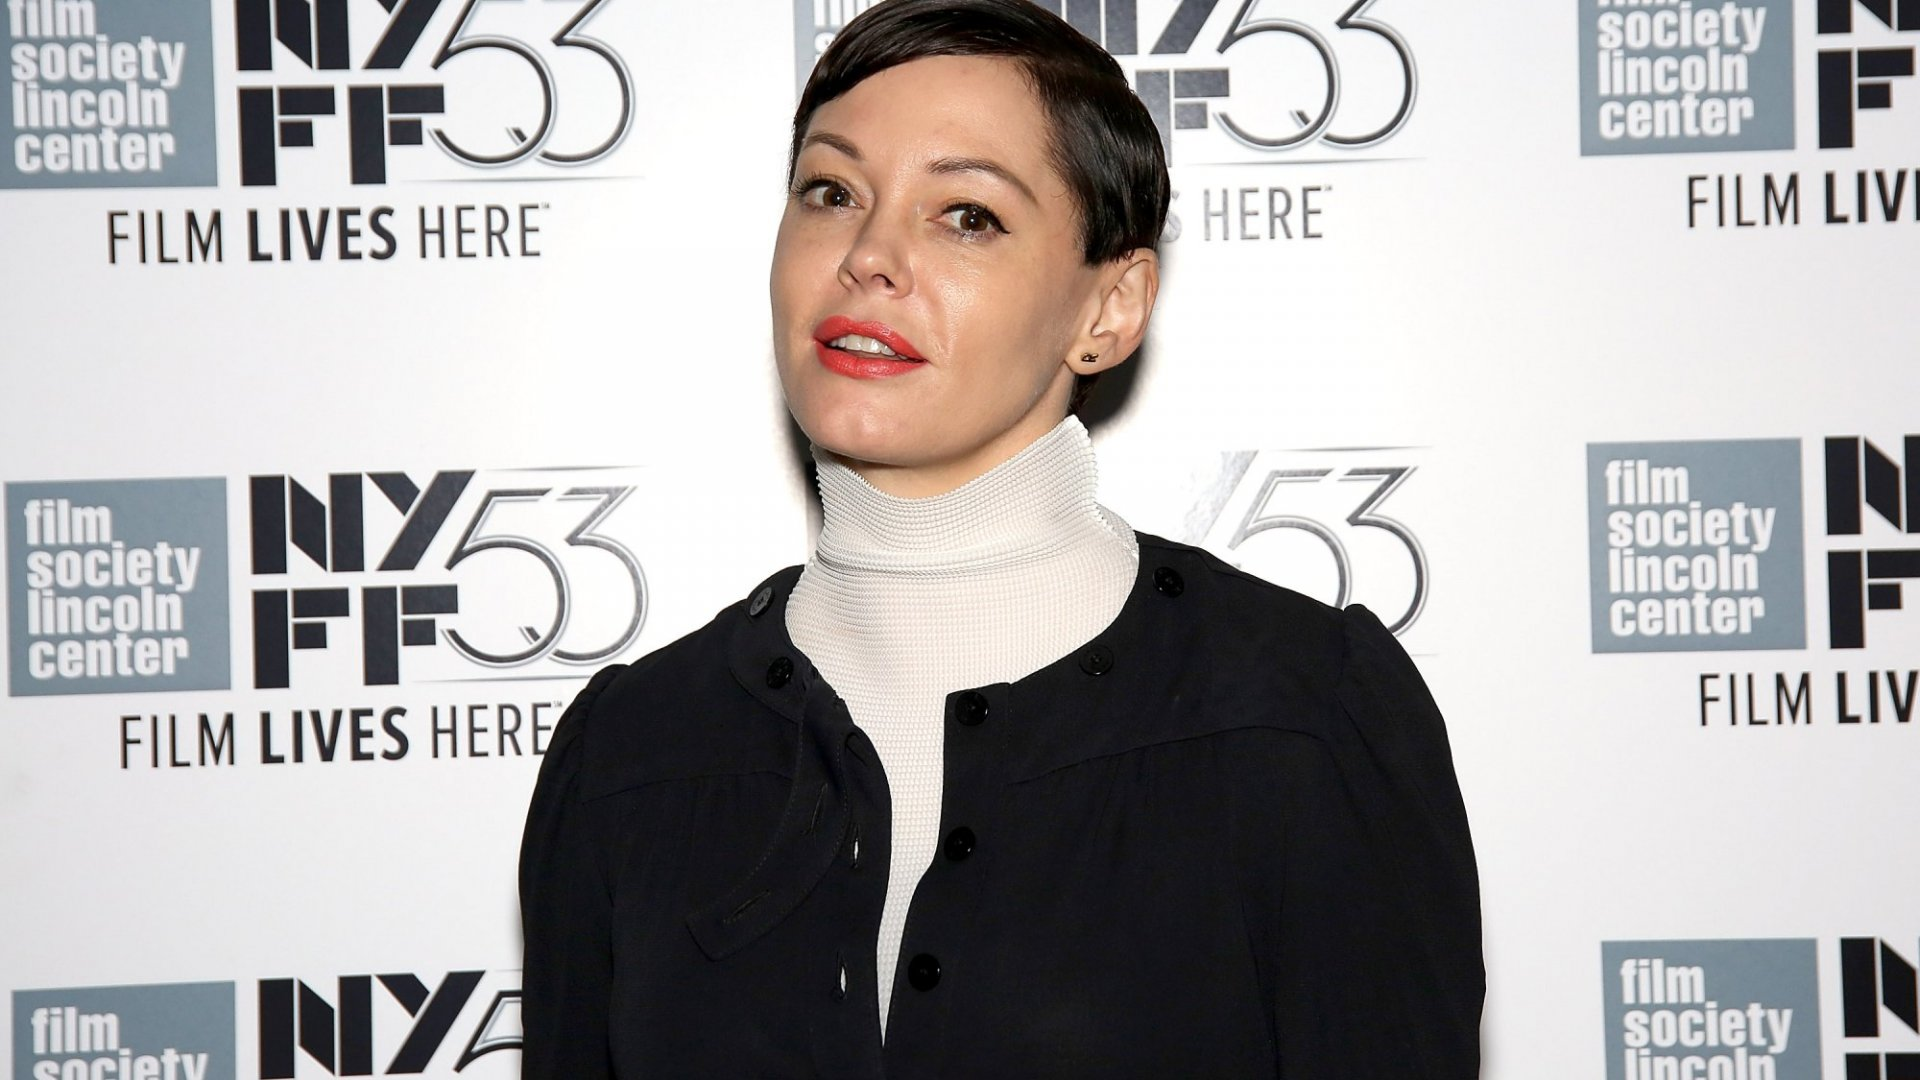 Twitter Suspended Rose McGowan's Account--and It Shows a Shocking Inconsistency (Look at Who It Hasn't Suspended)